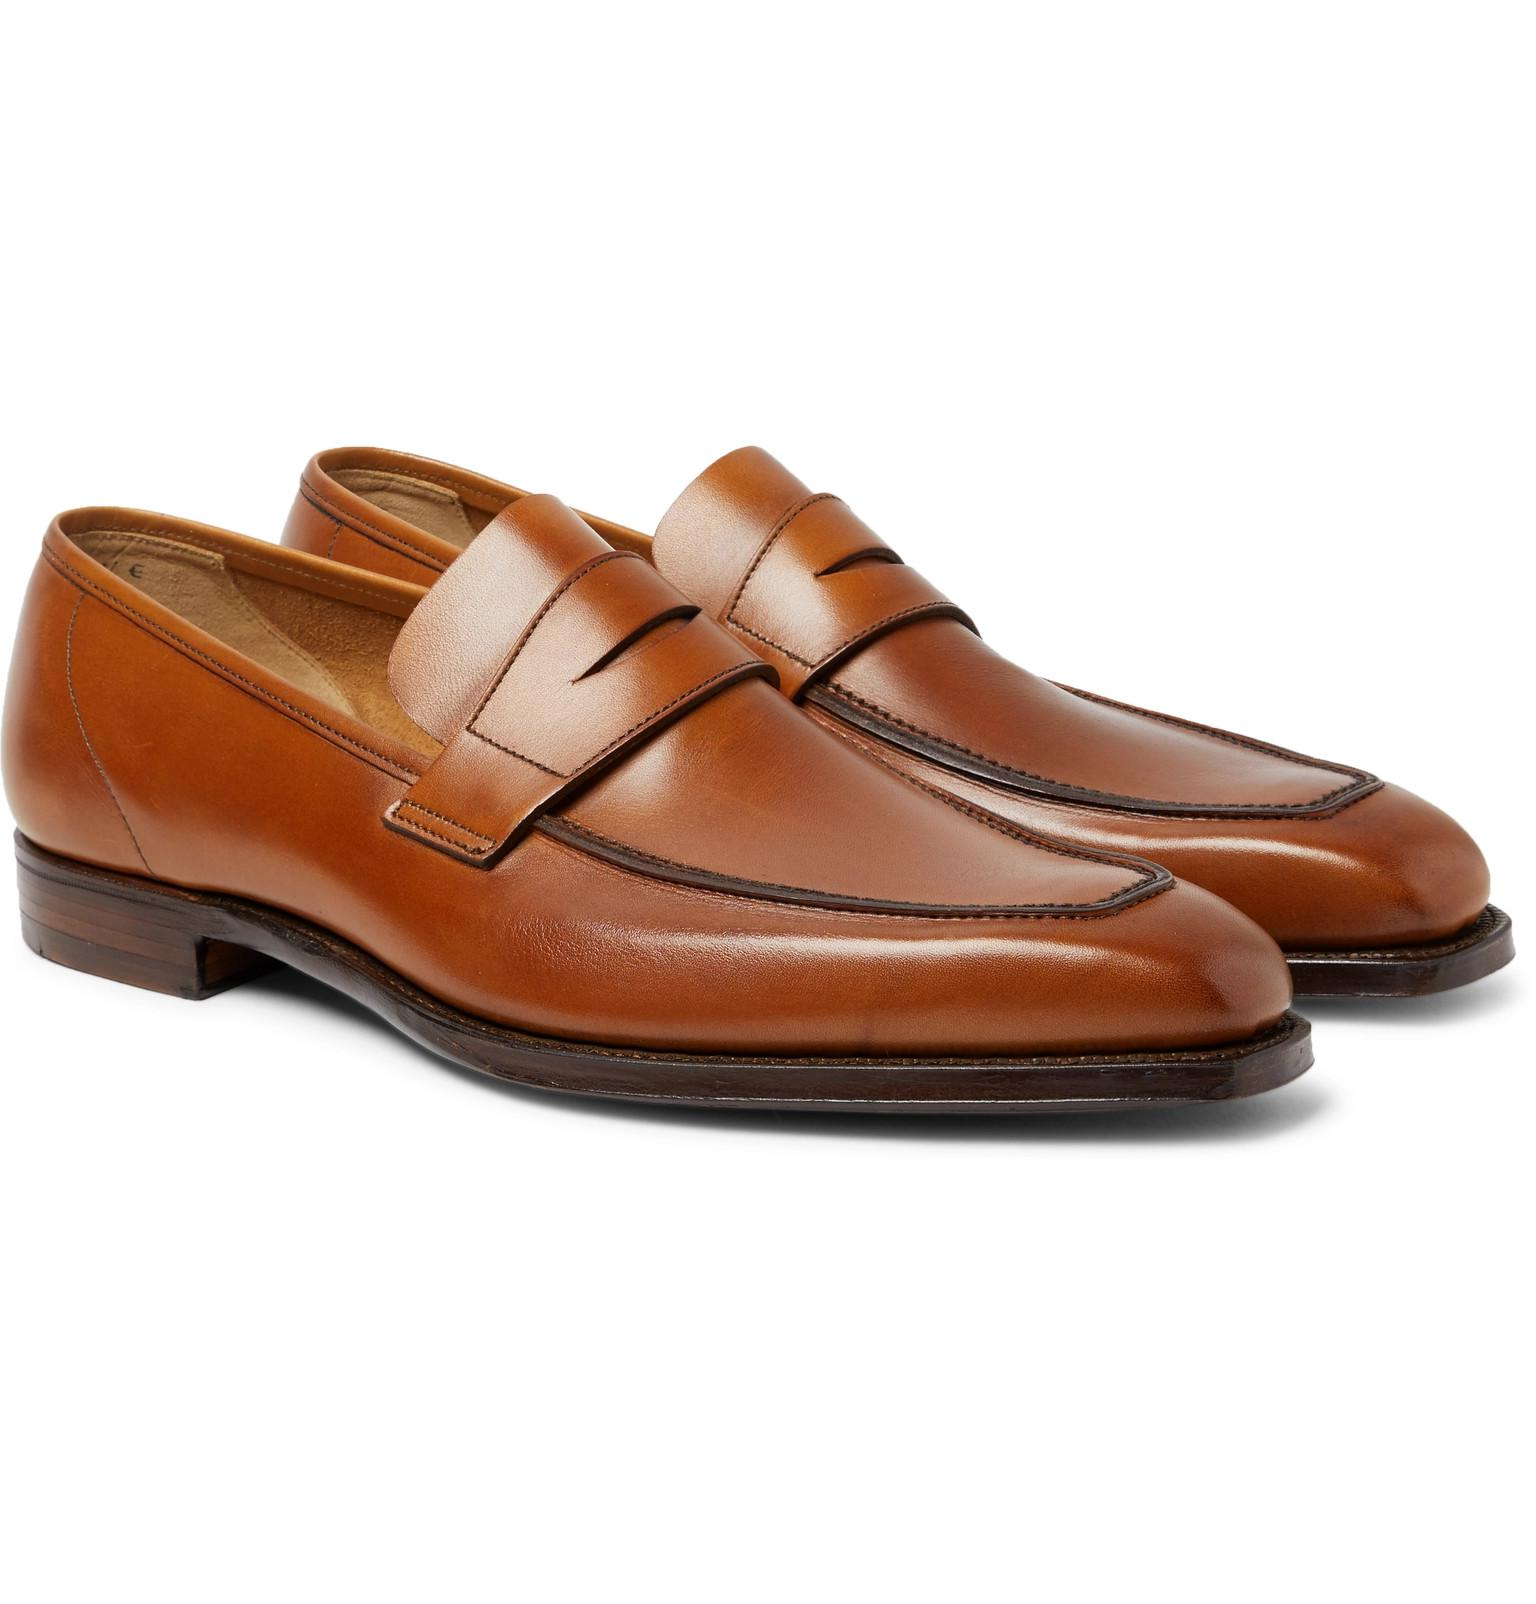 Thomas Leather Monk-strap Shoes - BrownGeorge Cleverley hfY2aAIq